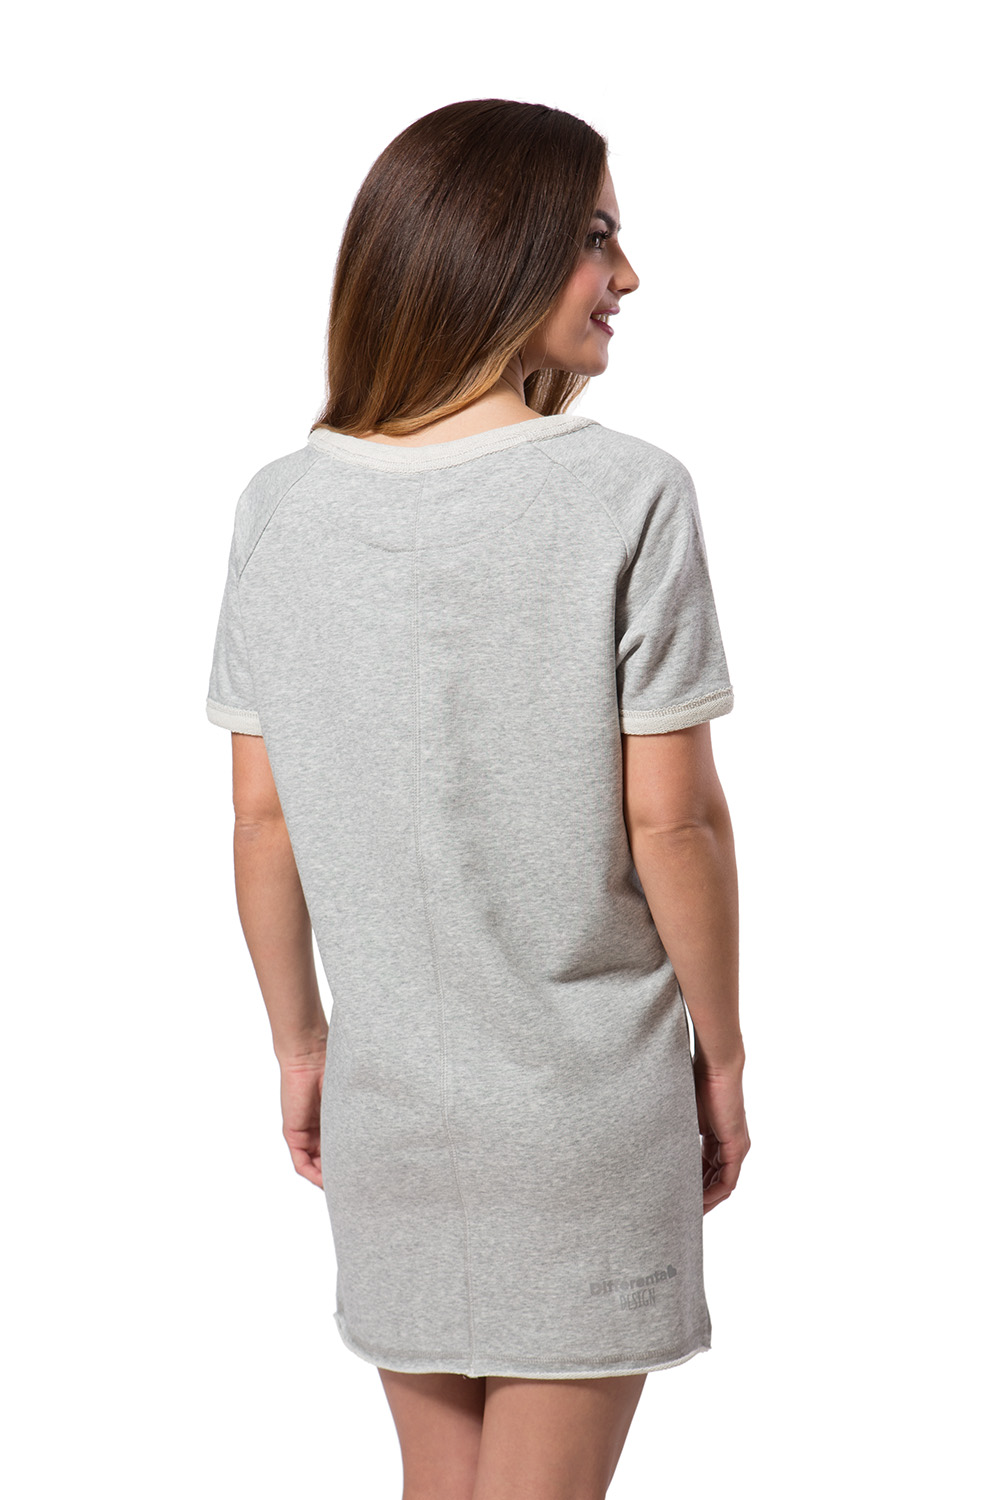 Differenta Design šedé sportovní šaty Sweat Dress